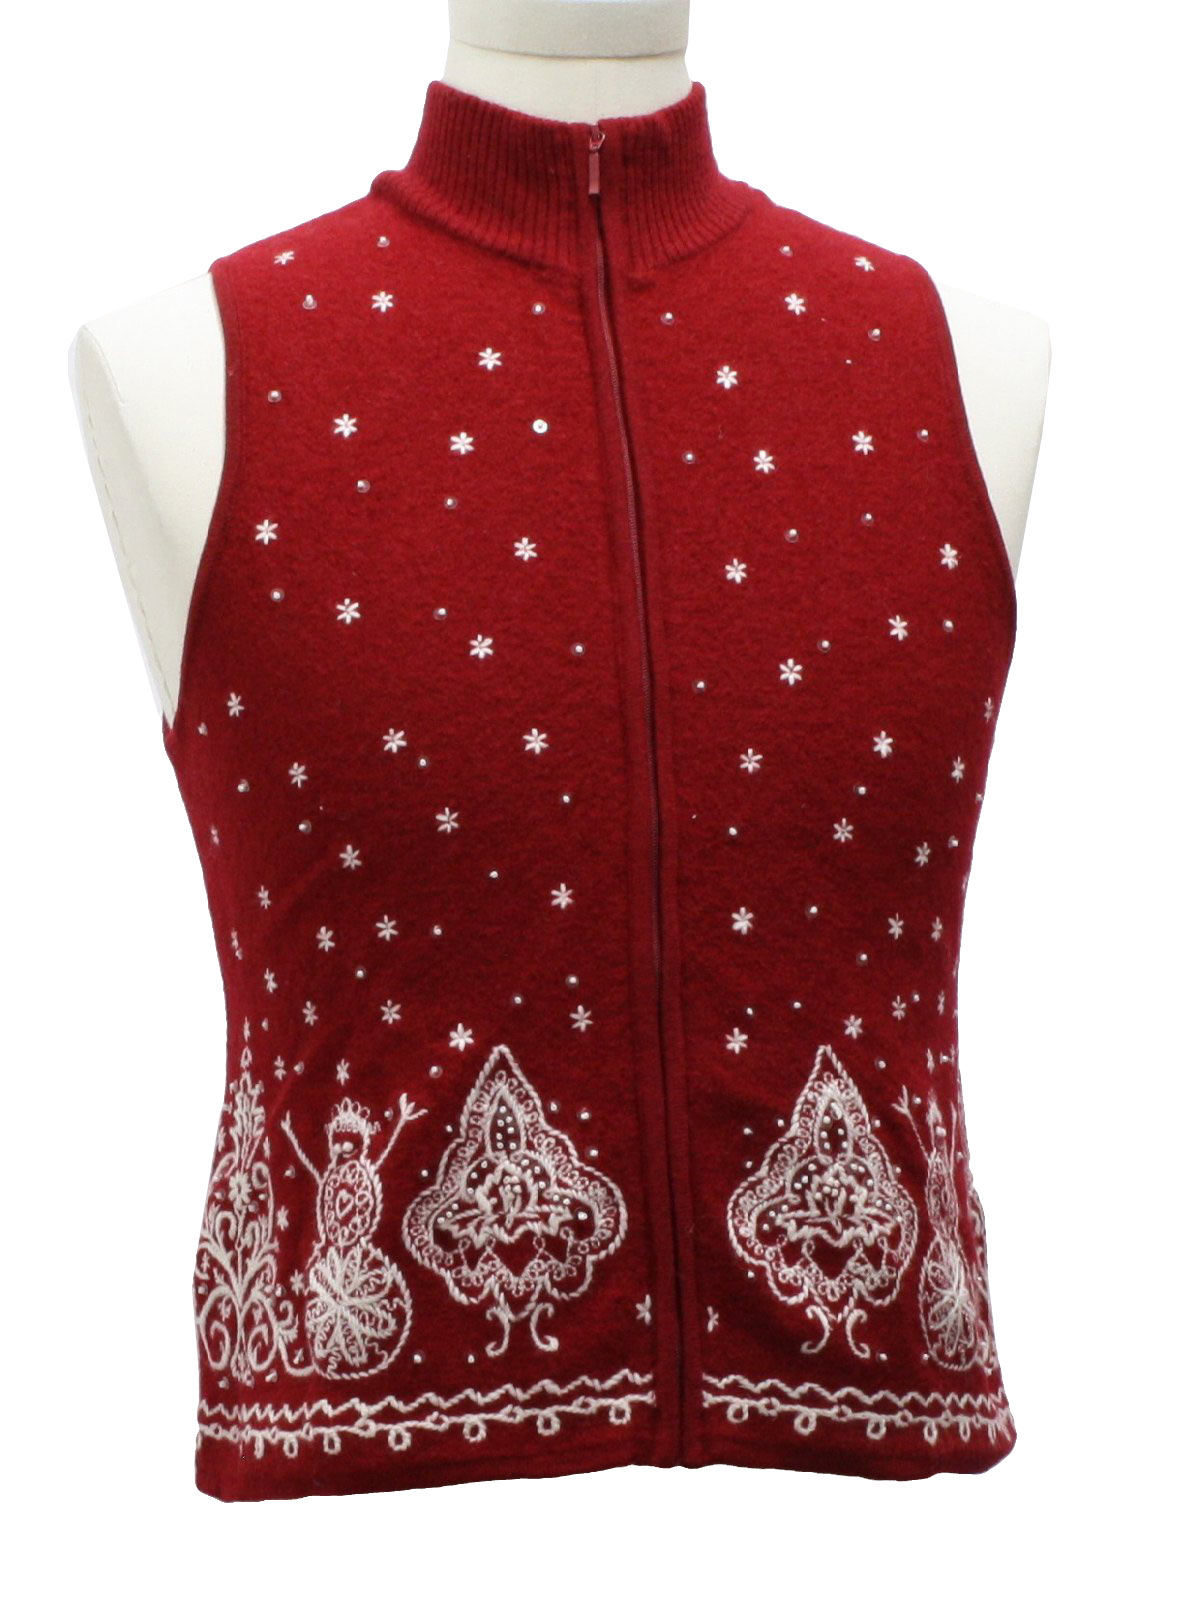 Womens/Girls Ugly Christmas Sweater Vest: -Talbots Petites- Girls ...